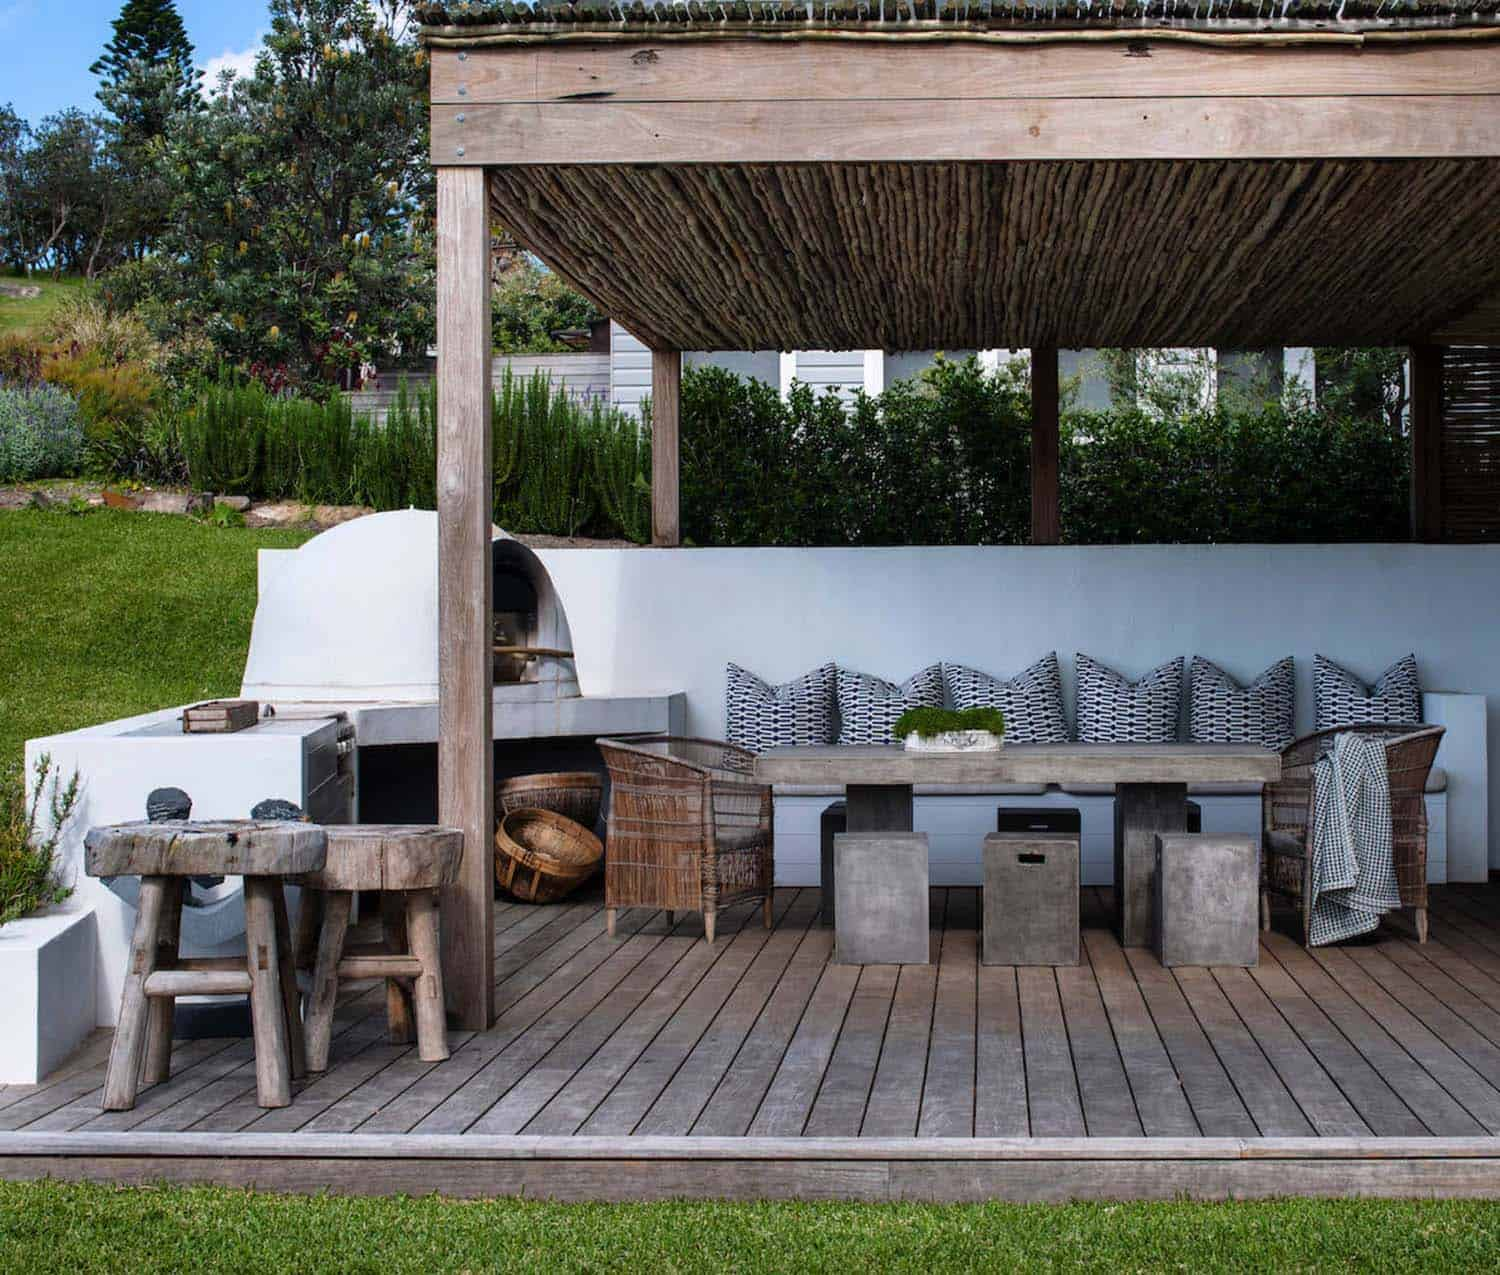 35 Brilliant And Inspiring Patio Ideas For Outdoor Living And Entertaining